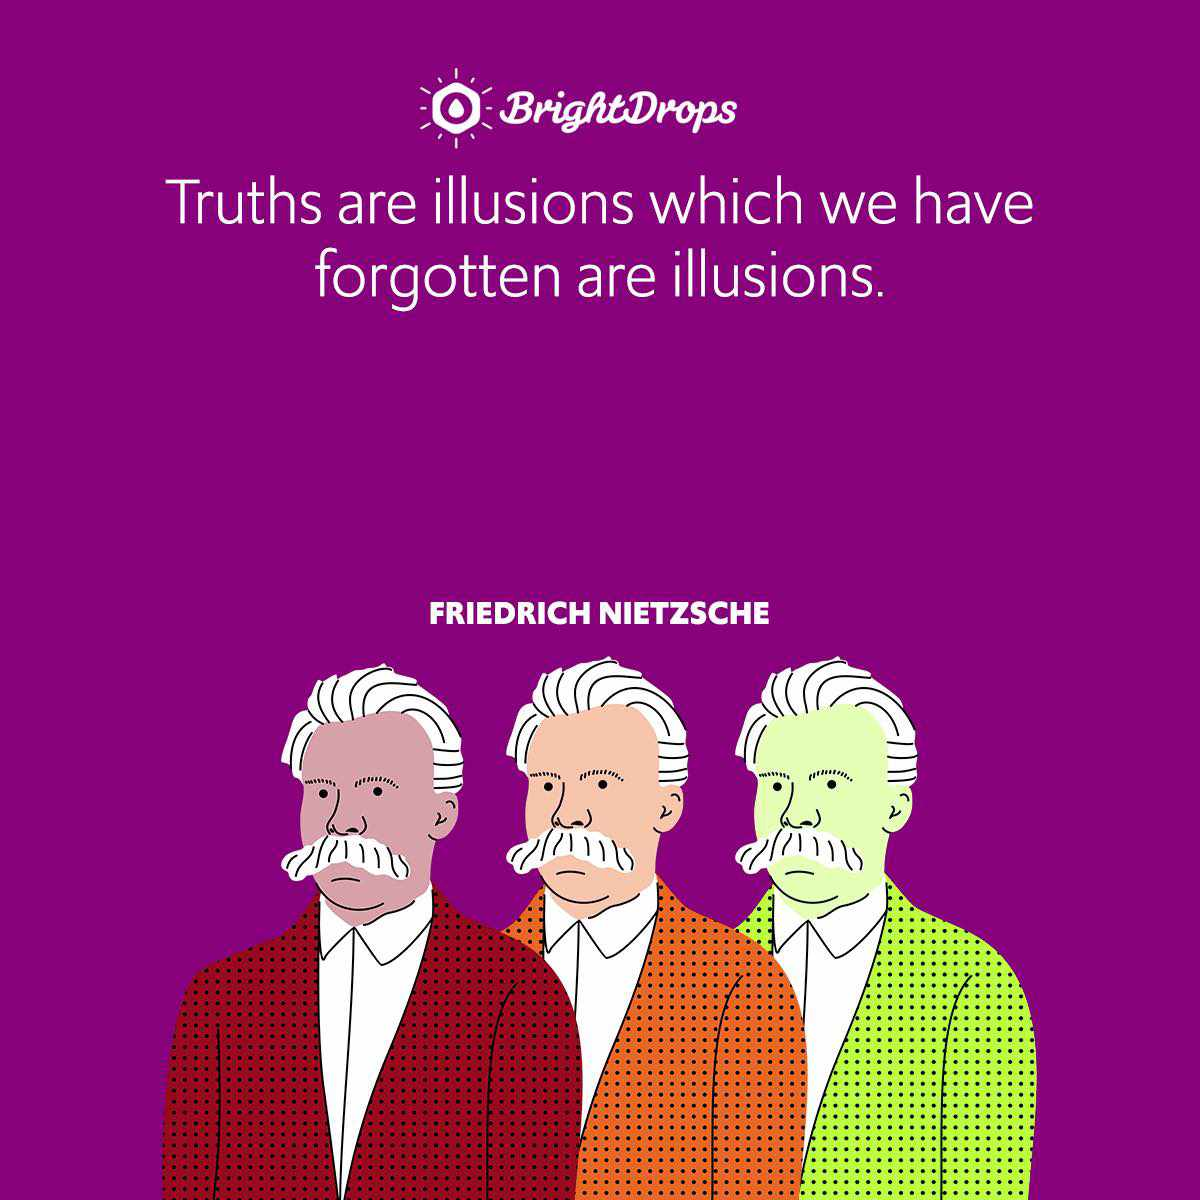 Truths are illusions which we have forgotten are illusions.